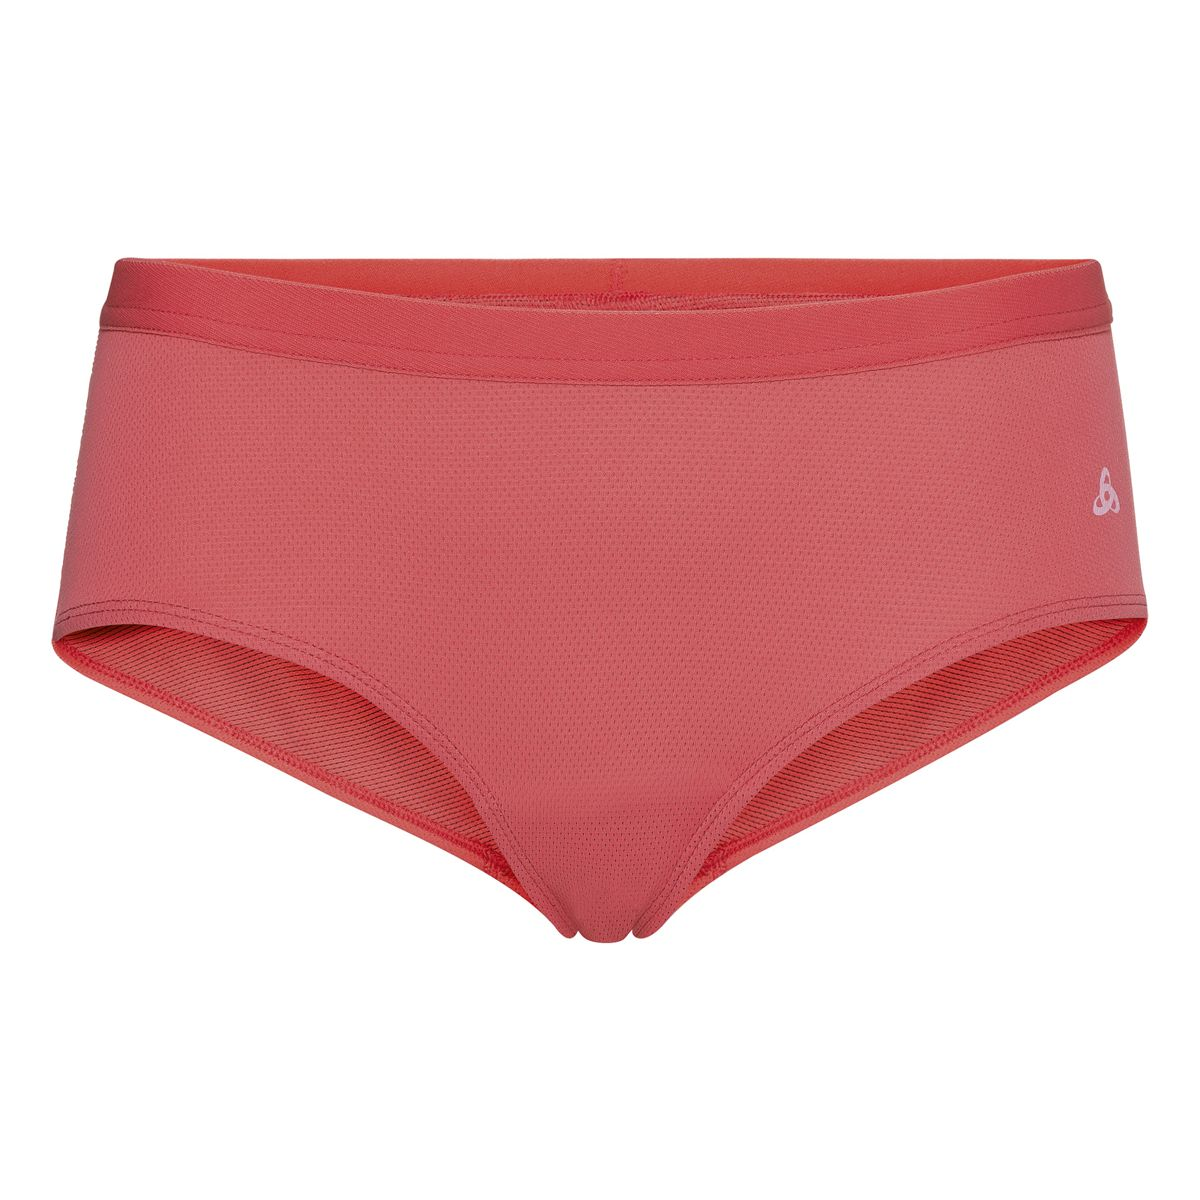 ACTIVE F-DRY LIGHT SUW Bottom Panty Damen Unterhose